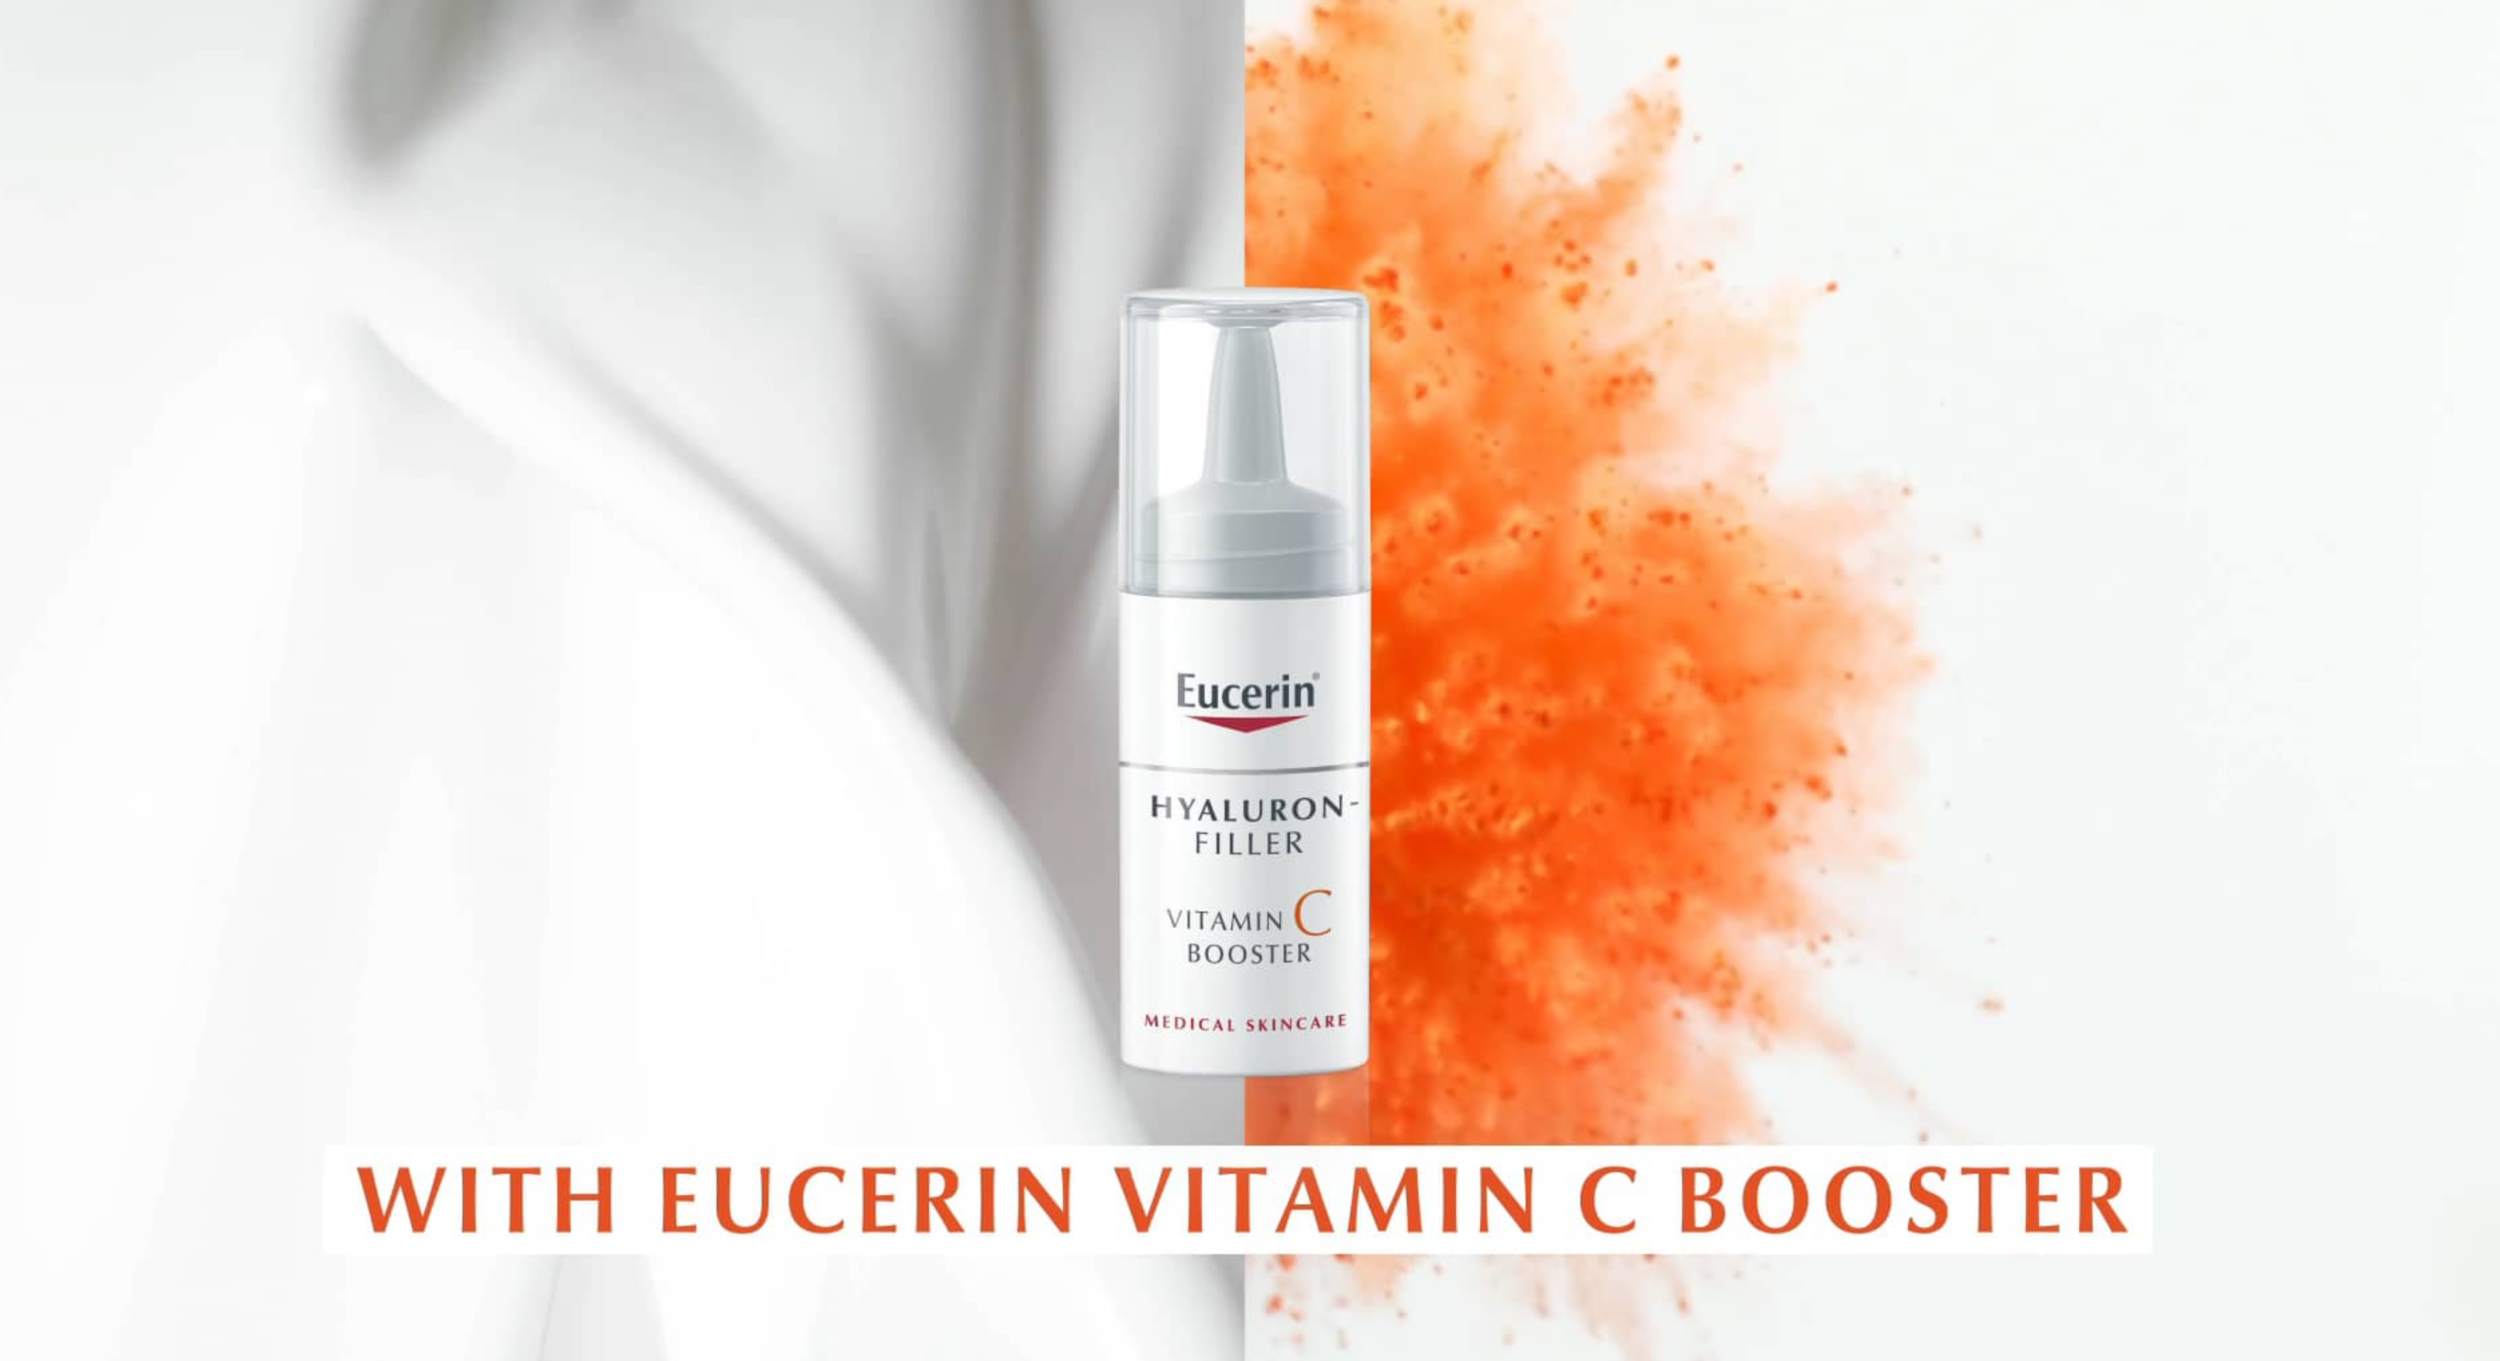 Eucerin International | Vitamin C Booster